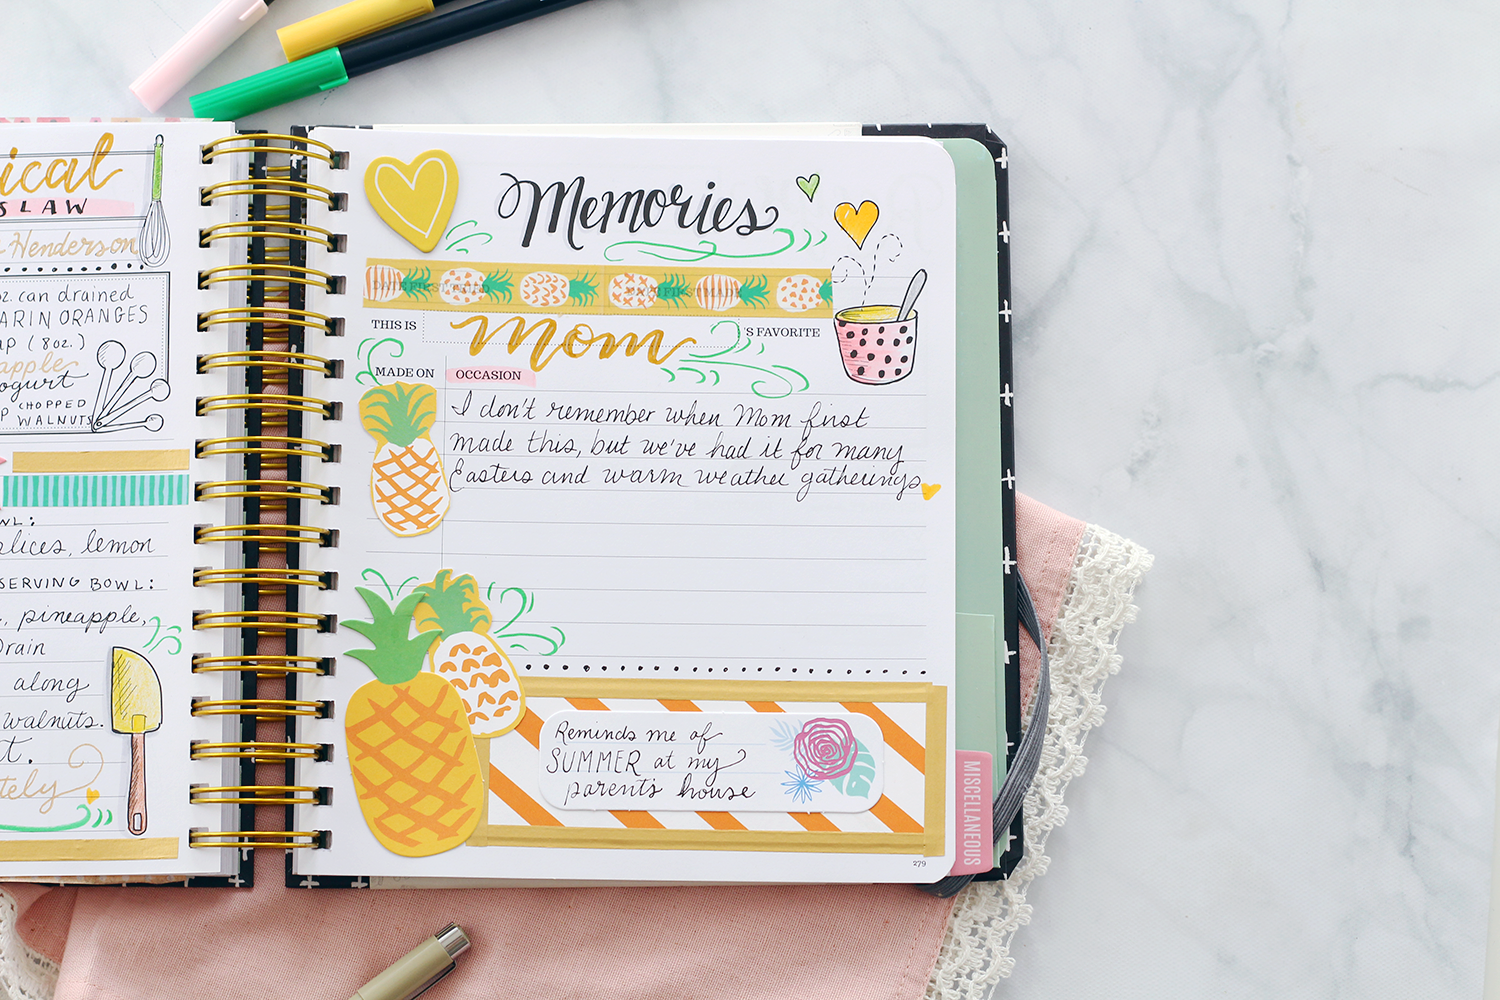 The Keepsake Kitchen Diary is not your average recipe keeper because it combines a journaling memory page for recording special moments and scrapbooking memories